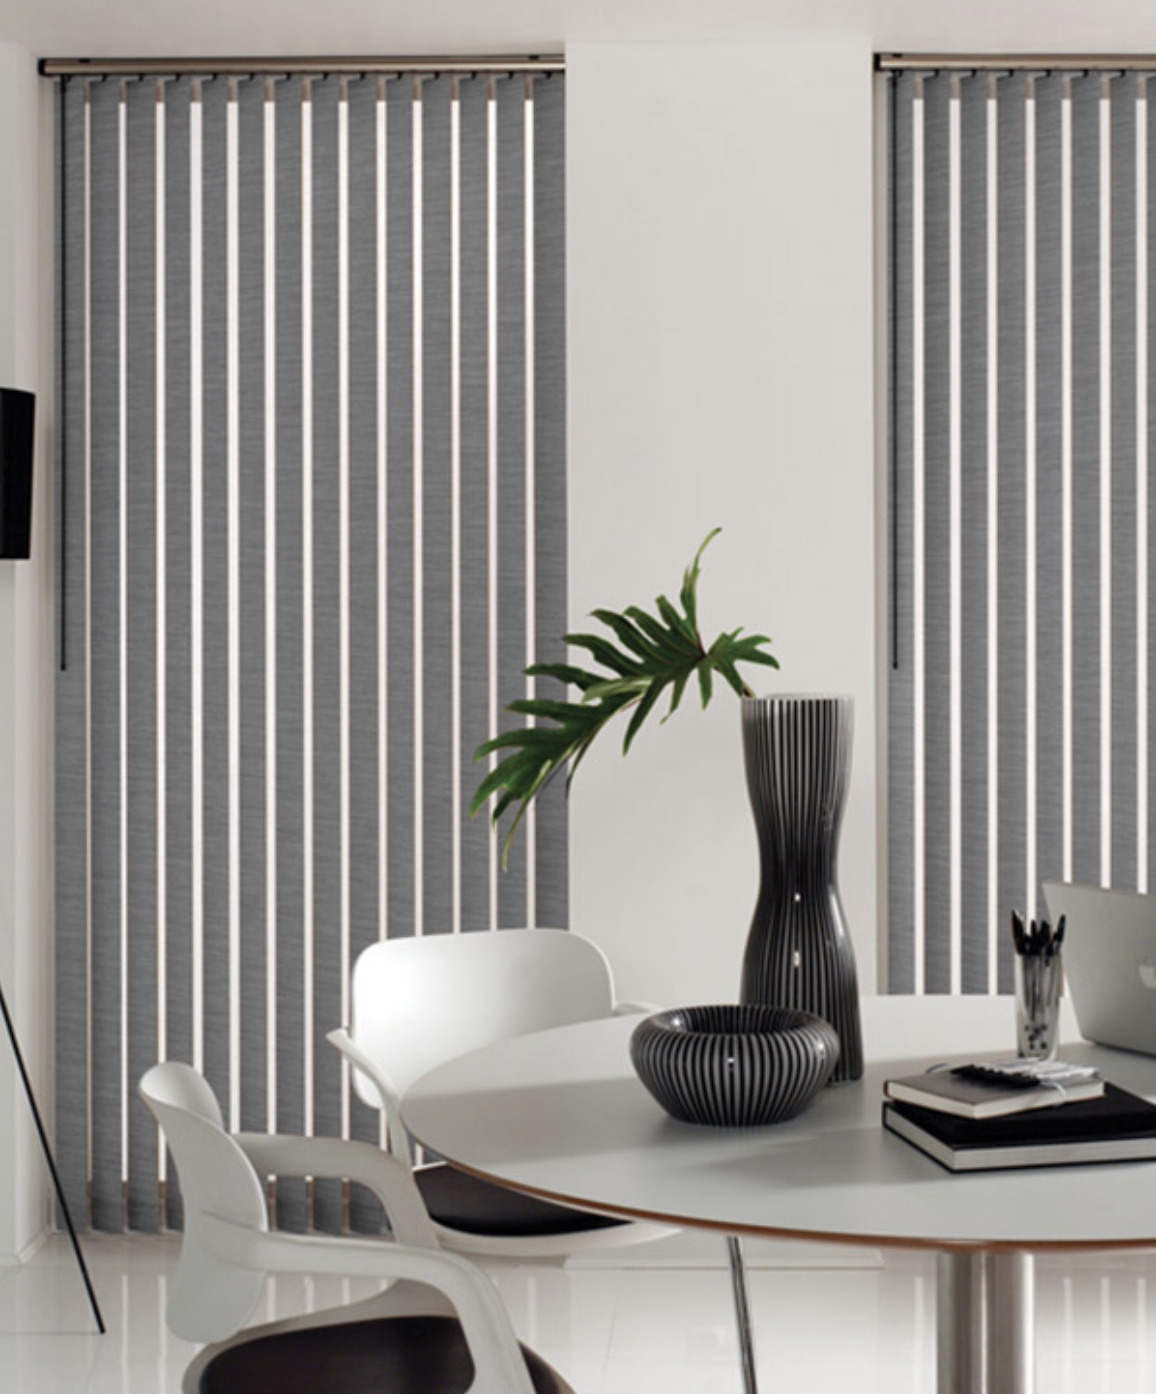 Vertical slat blinds are light and airy